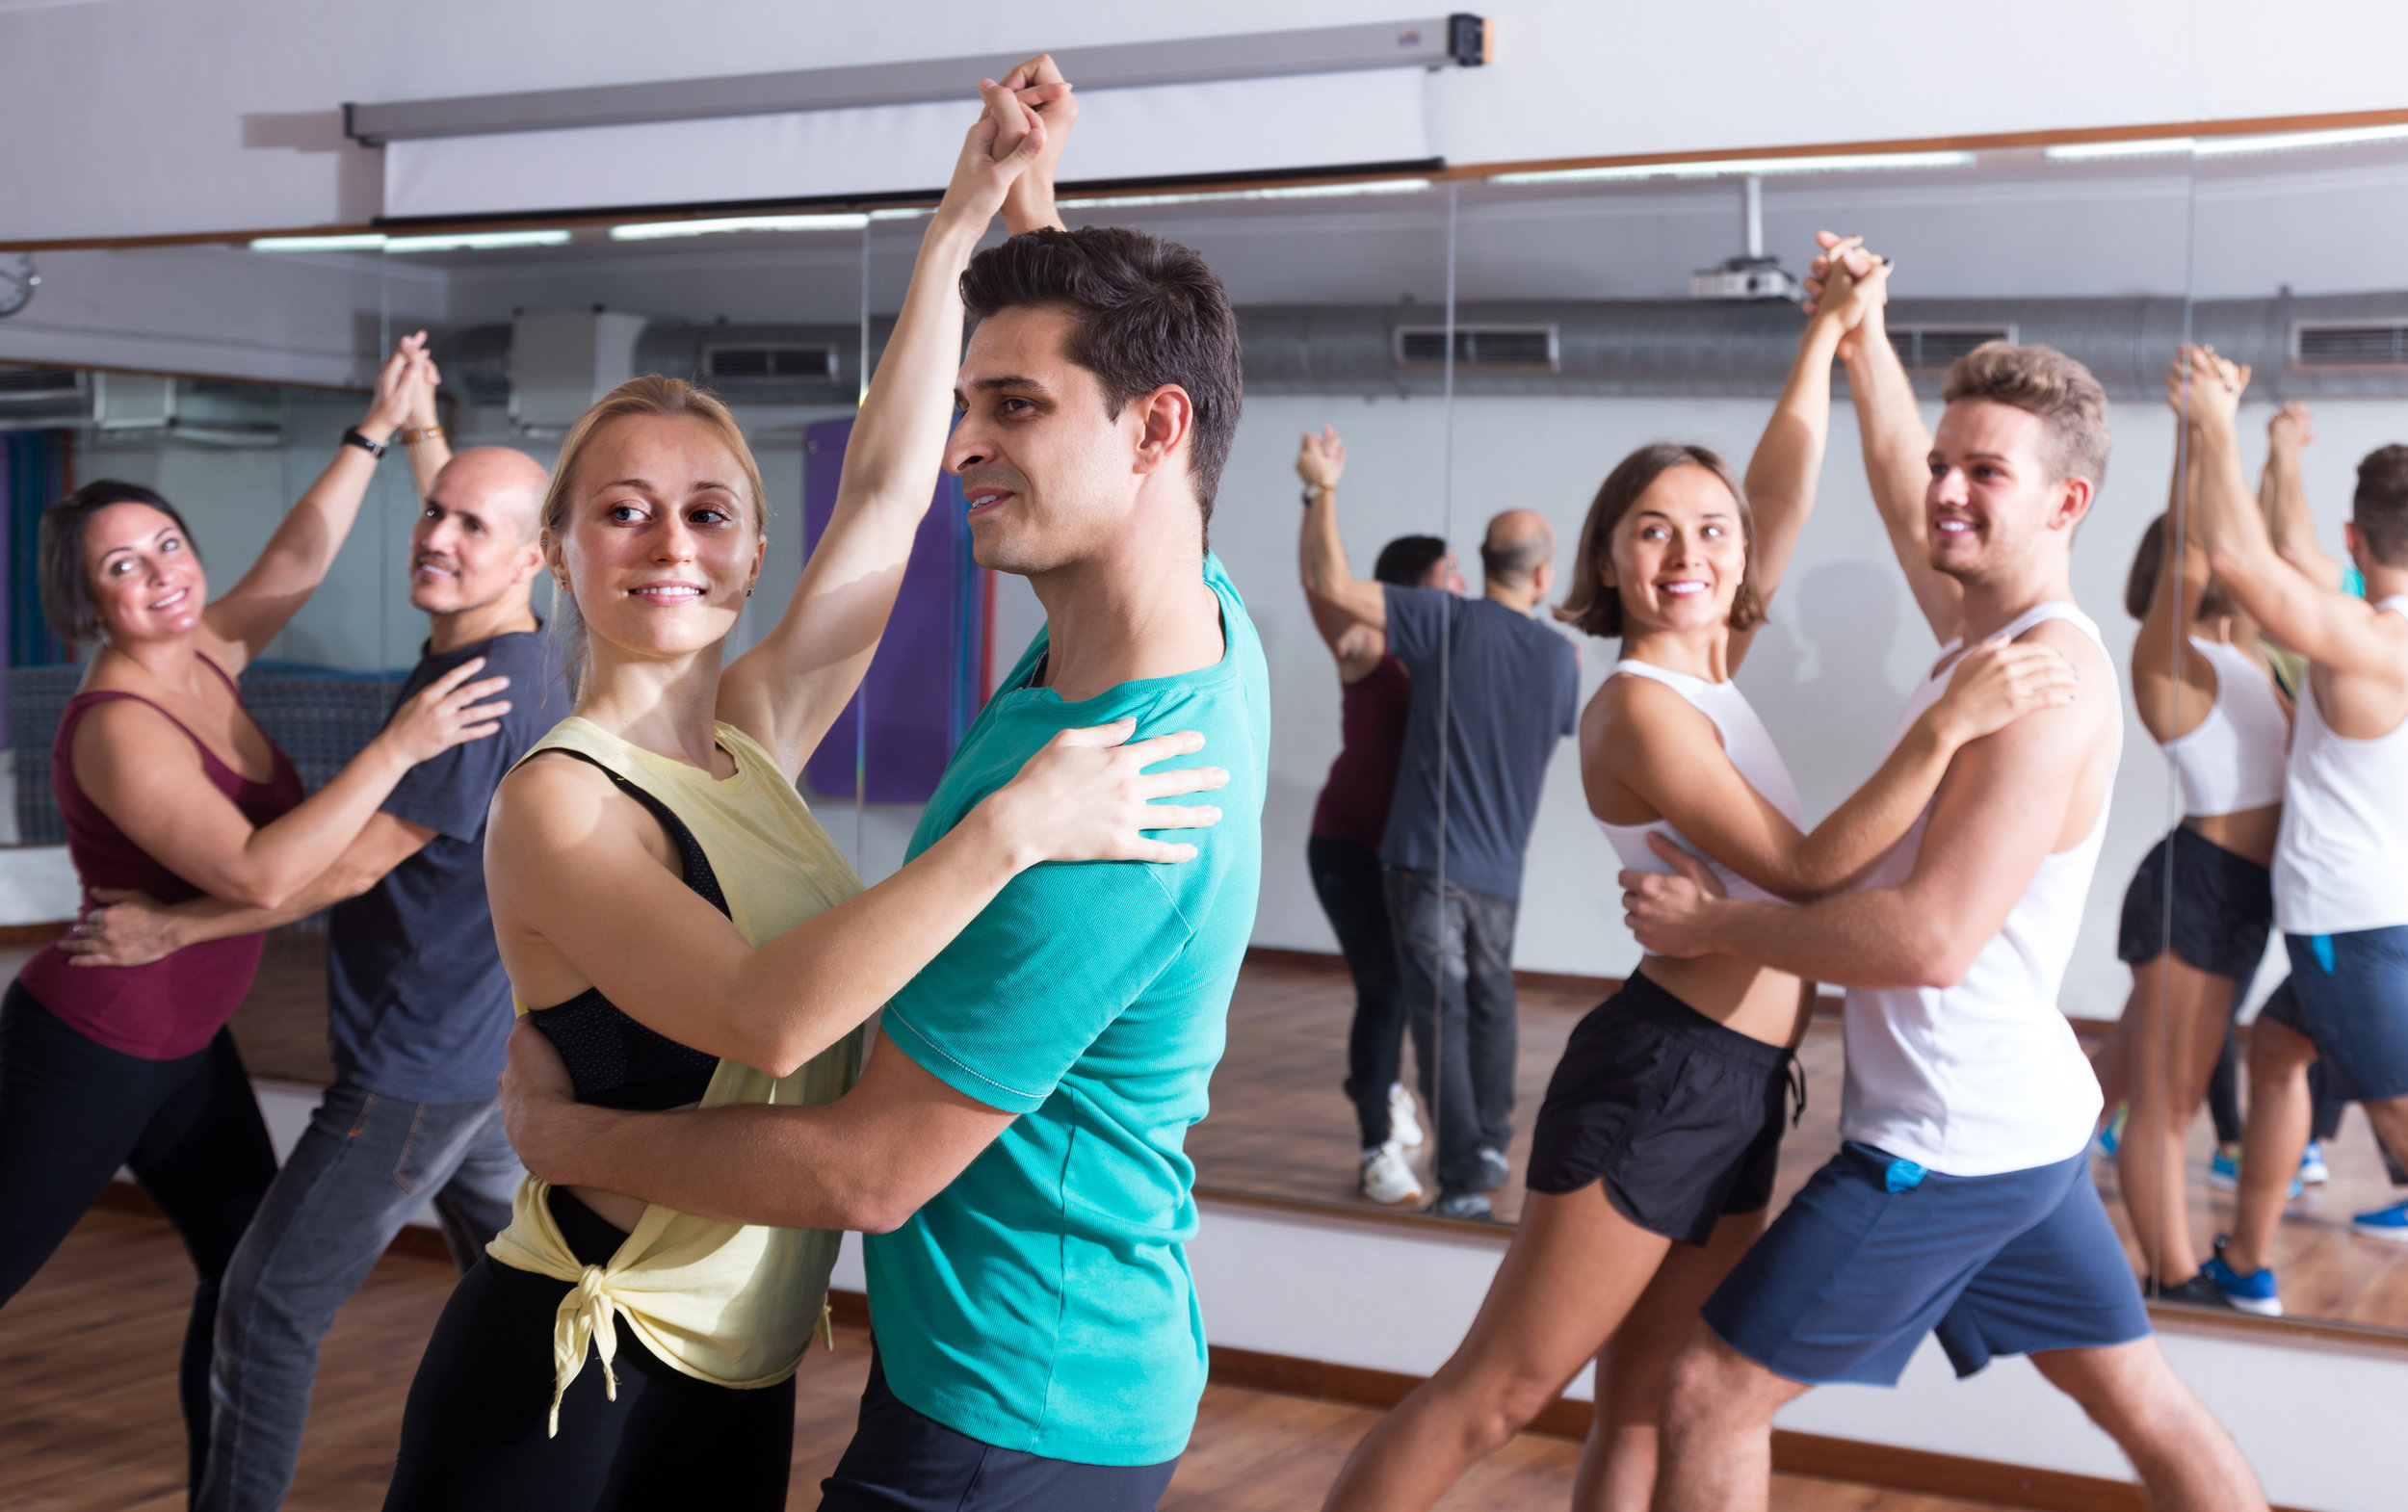 """Date:  Every 1st Saturday of the Month   Time:  10:00pm – 3:00am   Description:  Bongo Loco & STEPPING OUT STUDIOS PRESENTS TODA LA NOCHE – New York City's exciting monthly Salsa Social featuring the hottest dancers, DJs, and performances in NYC!Featuring: DJ Mustachio and DJ Rudy Acosta aka """"The Power of Love.   Ladies and Gentlemen,   You are cordially invited to come out and shake ya groove thang with us once again at Toda La Noche at Stepping Out Studios. This is one of the top salsa party's going in NYC to date. Hosted and Organized by Nicholas Messina of Bongo Loco NYC Salsa at Stepping Out Studios. Come be a part of our very special, ONCE a month Party. In addition to our infamous Duo DJ Rudy """"the power of love"""" Acosta, and DJ Bongo Loco himself aka. Nicholas Messina! There will be great dancers, amazing people, great music, instruments, cold drinks, good vibes and warm smiles. Come out and celebrate with the Bongo Loco Crew.    Sincerely,    Nick Messina    $15 for General Public    You can make a reservation here for free, but payment is """"cash only"""" at the door."""